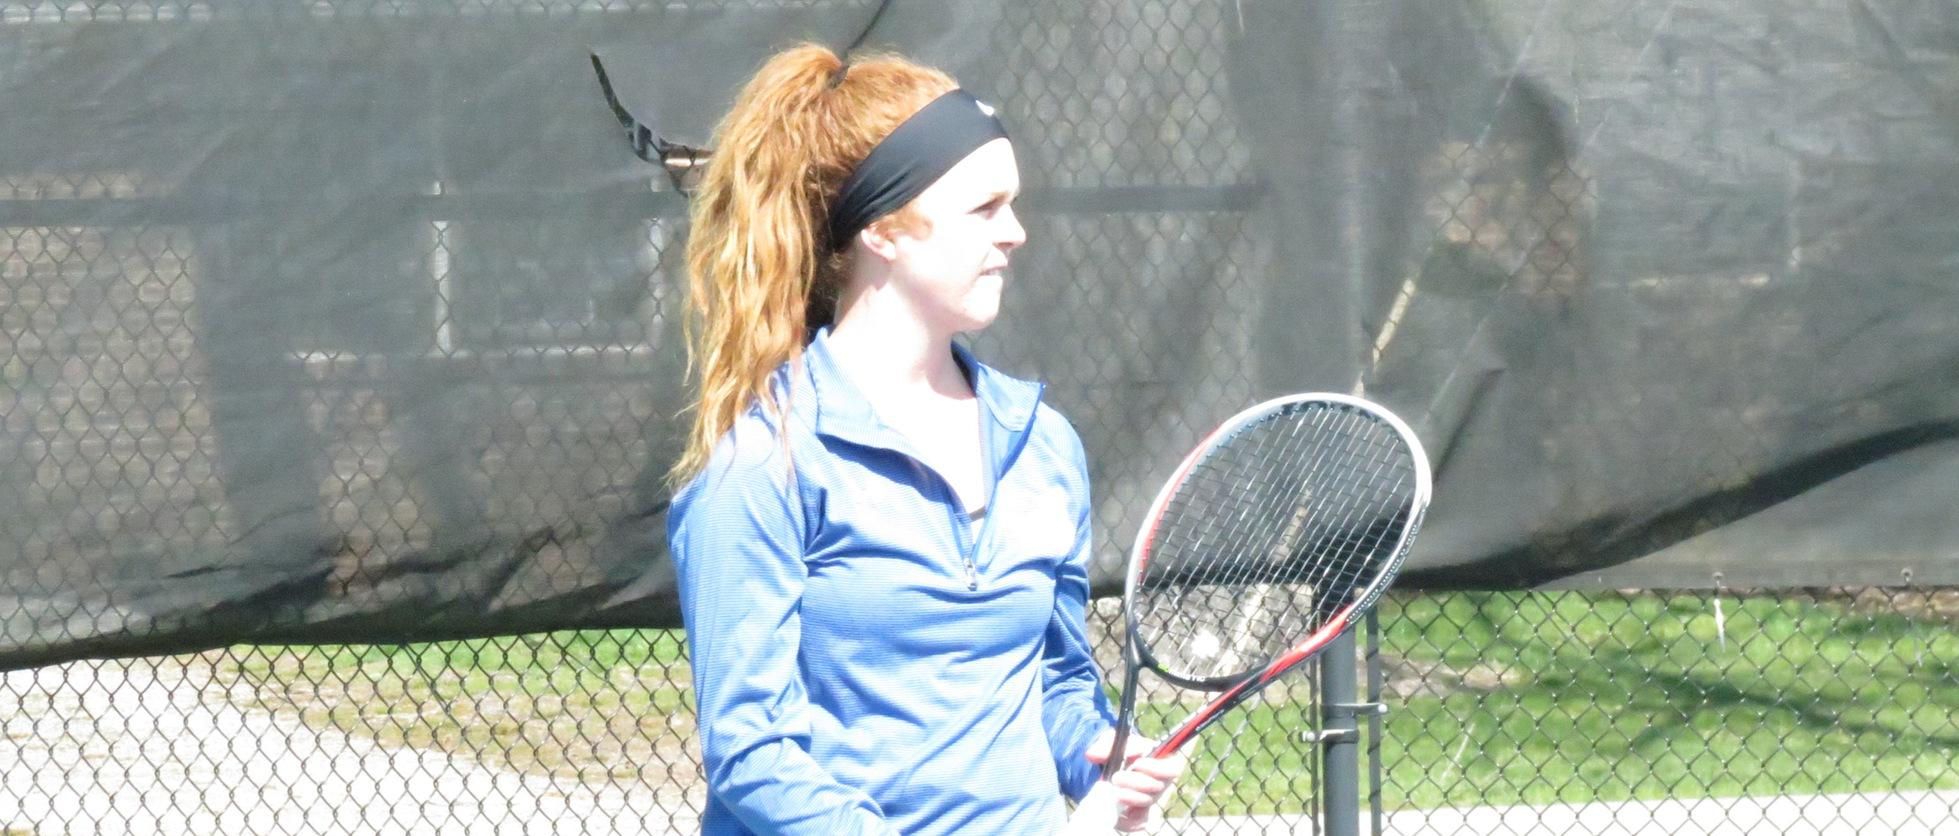 Kushner, Spear Grab Singles Victories For Tornados